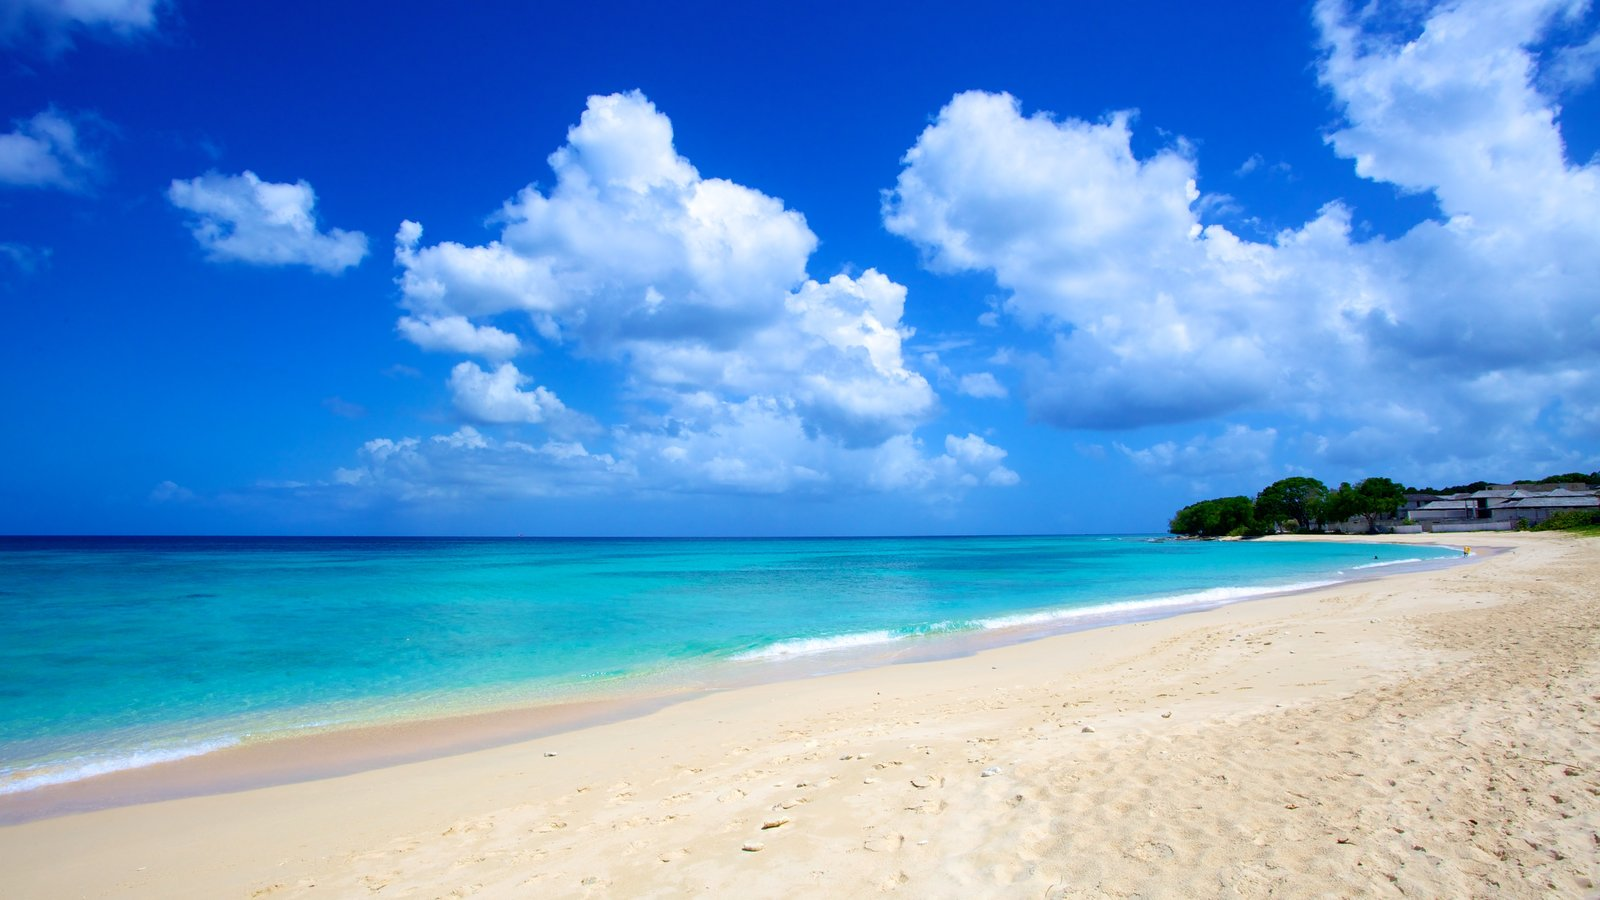 Explore The Beauty Of Caribbean: Paradise Beach Pictures: View Photos & Images Of Paradise